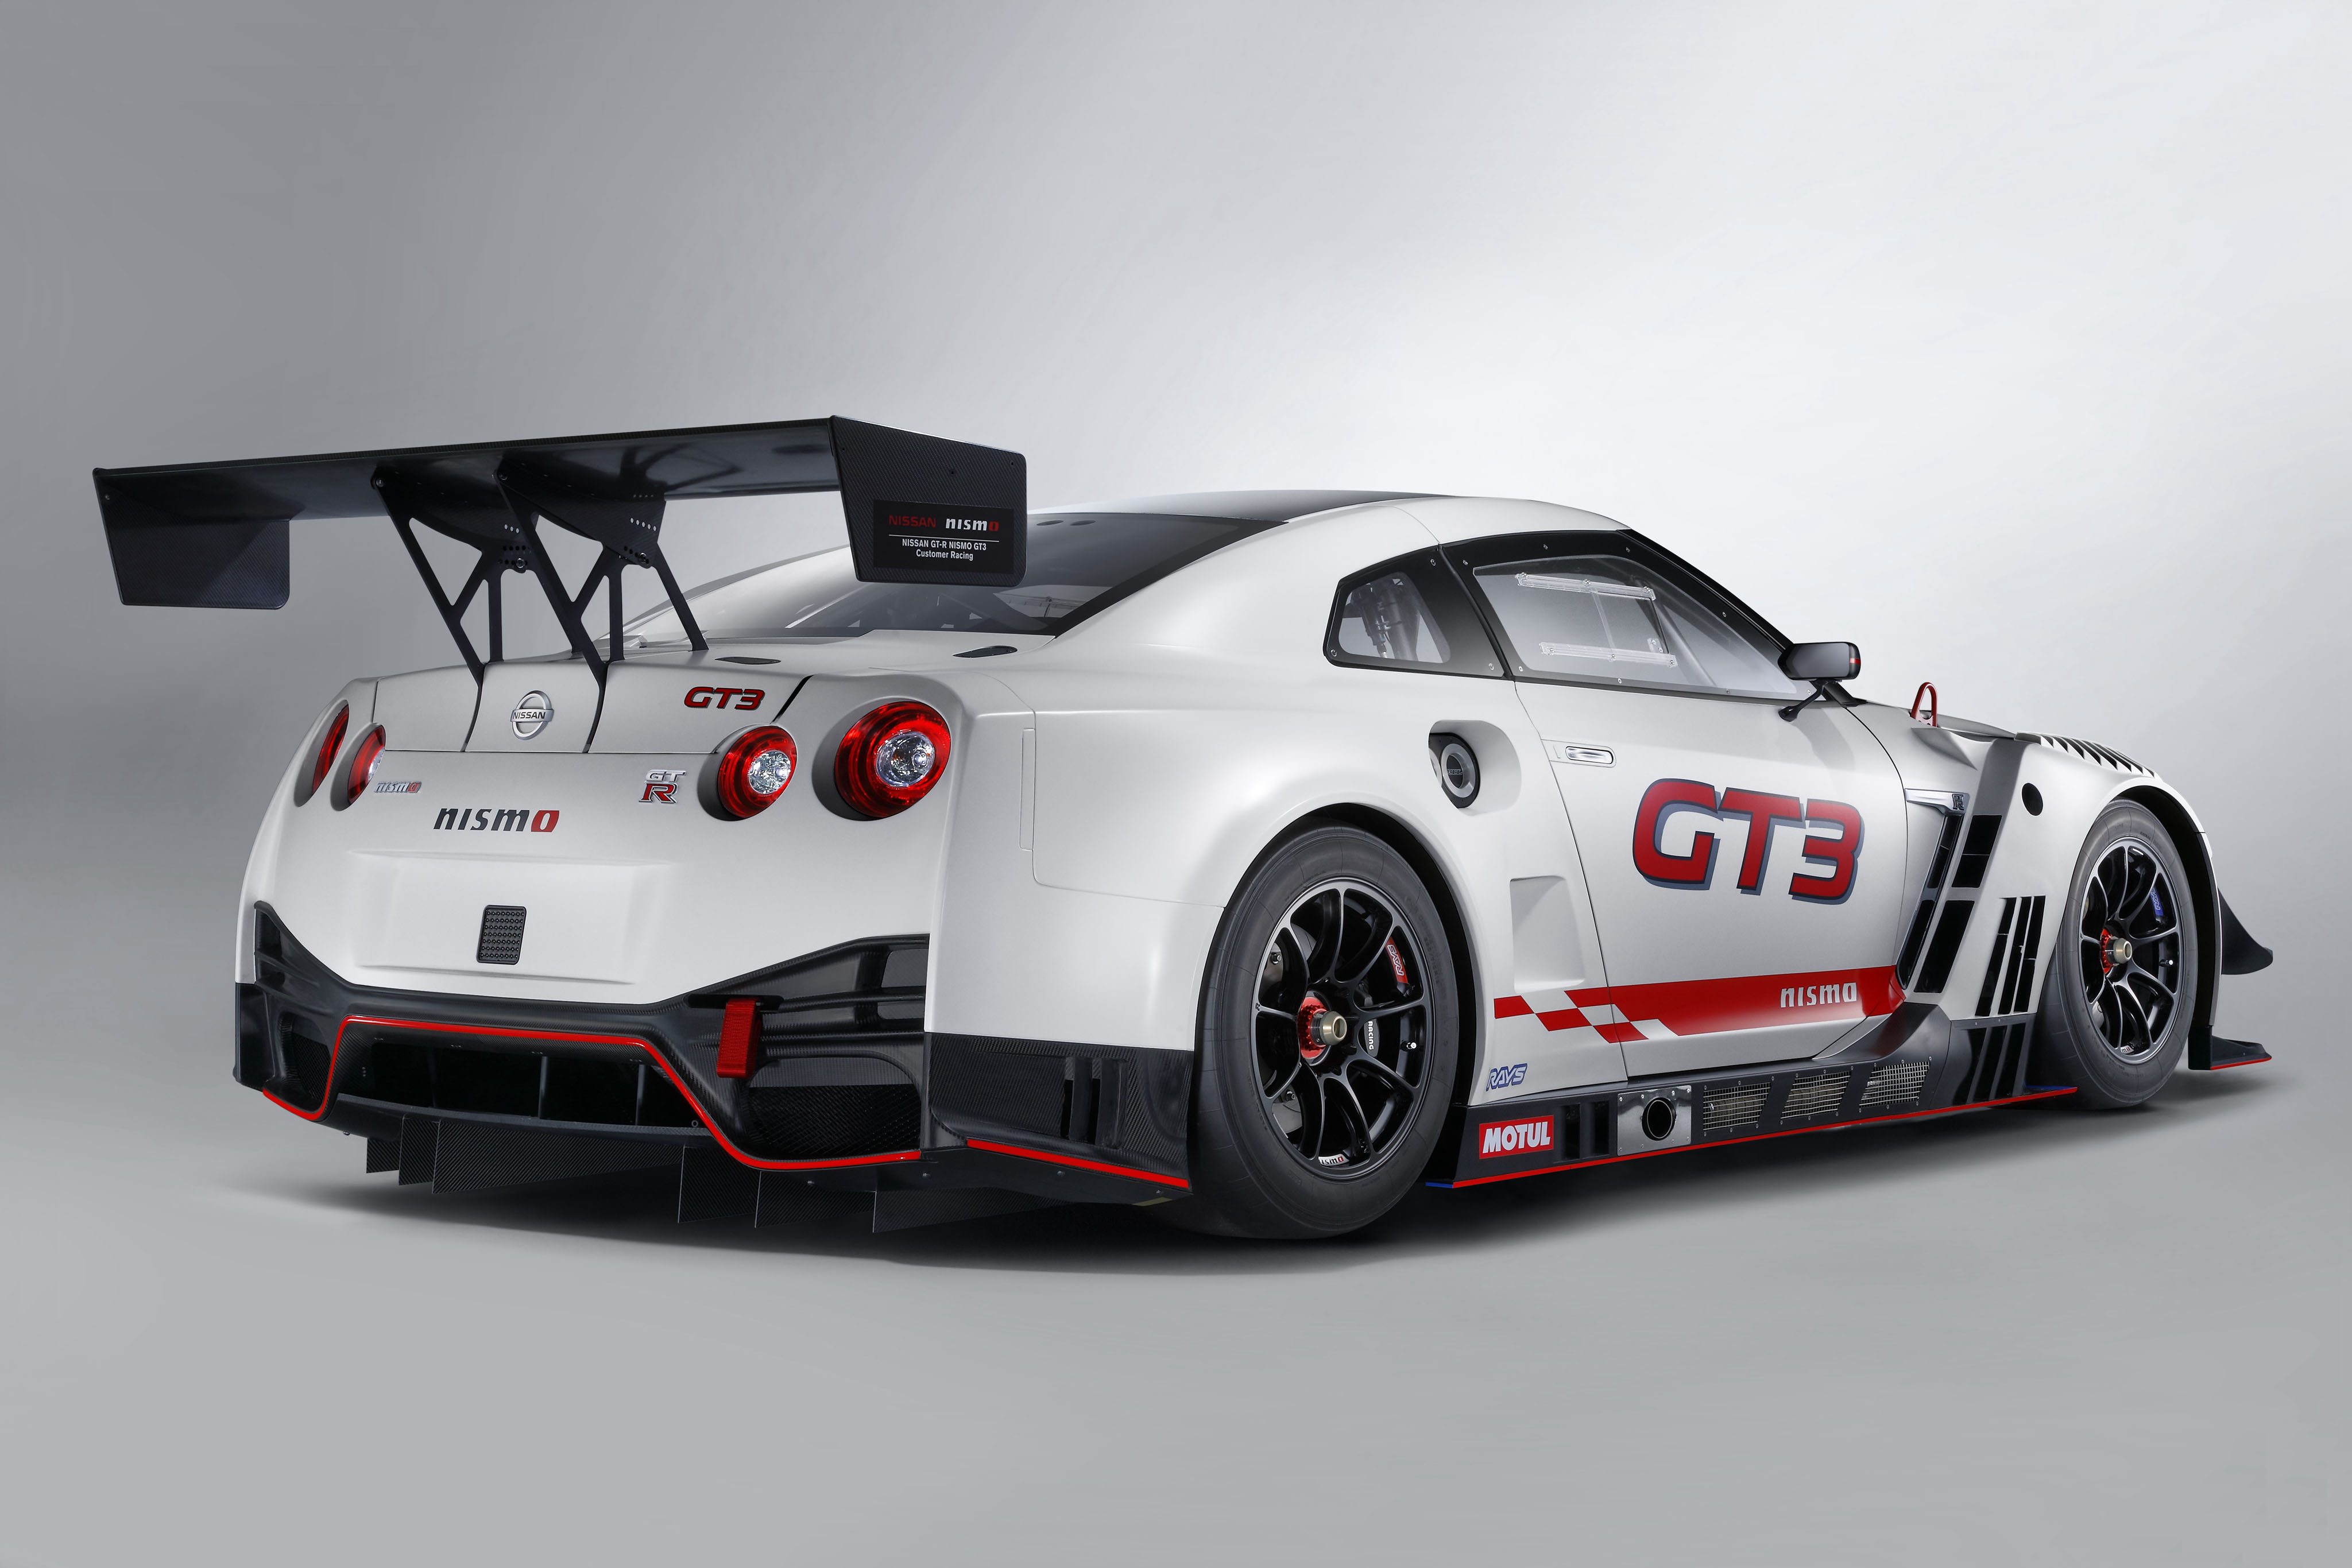 nismo nissan gt r gt3 2018 rear view 4k 1548528001 - Nismo Nissan GT R GT3 2018 Rear View 4k - nissan wallpapers, nissan gtr wallpapers, hd-wallpapers, cars wallpapers, 4k-wallpapers, 2018 cars wallpapers